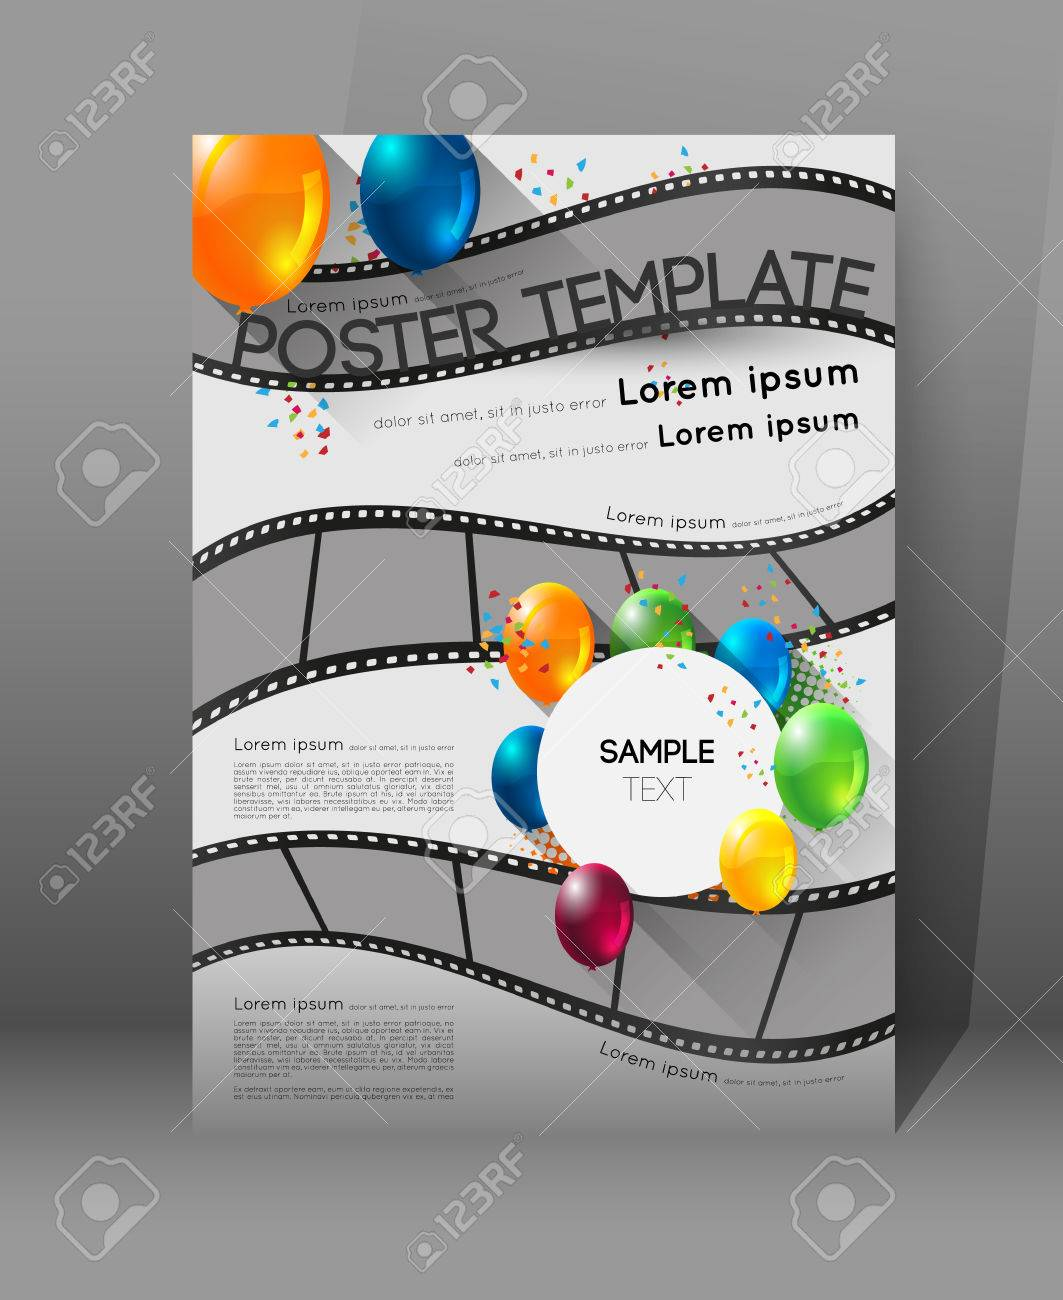 abstract movie poster template with film strips and colorful